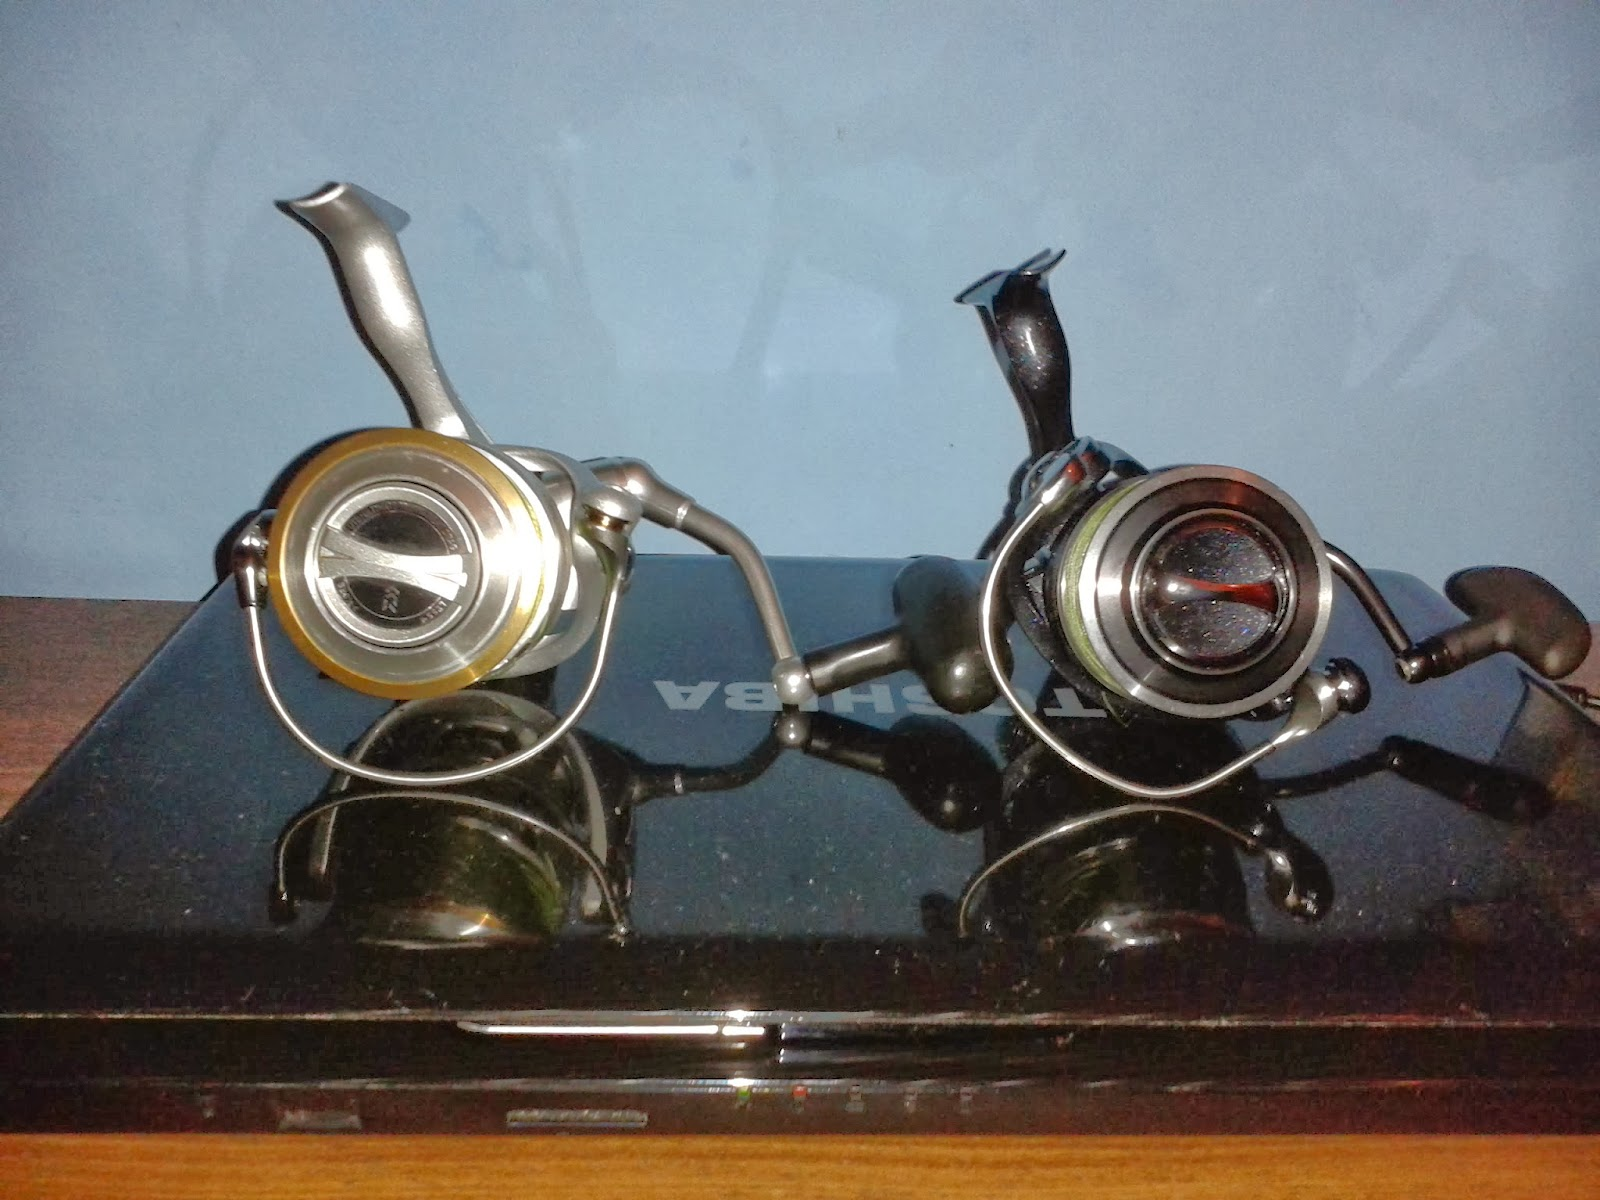 rickyvadepesca: DAIWA CALDIA 3000 SHA - photo#16